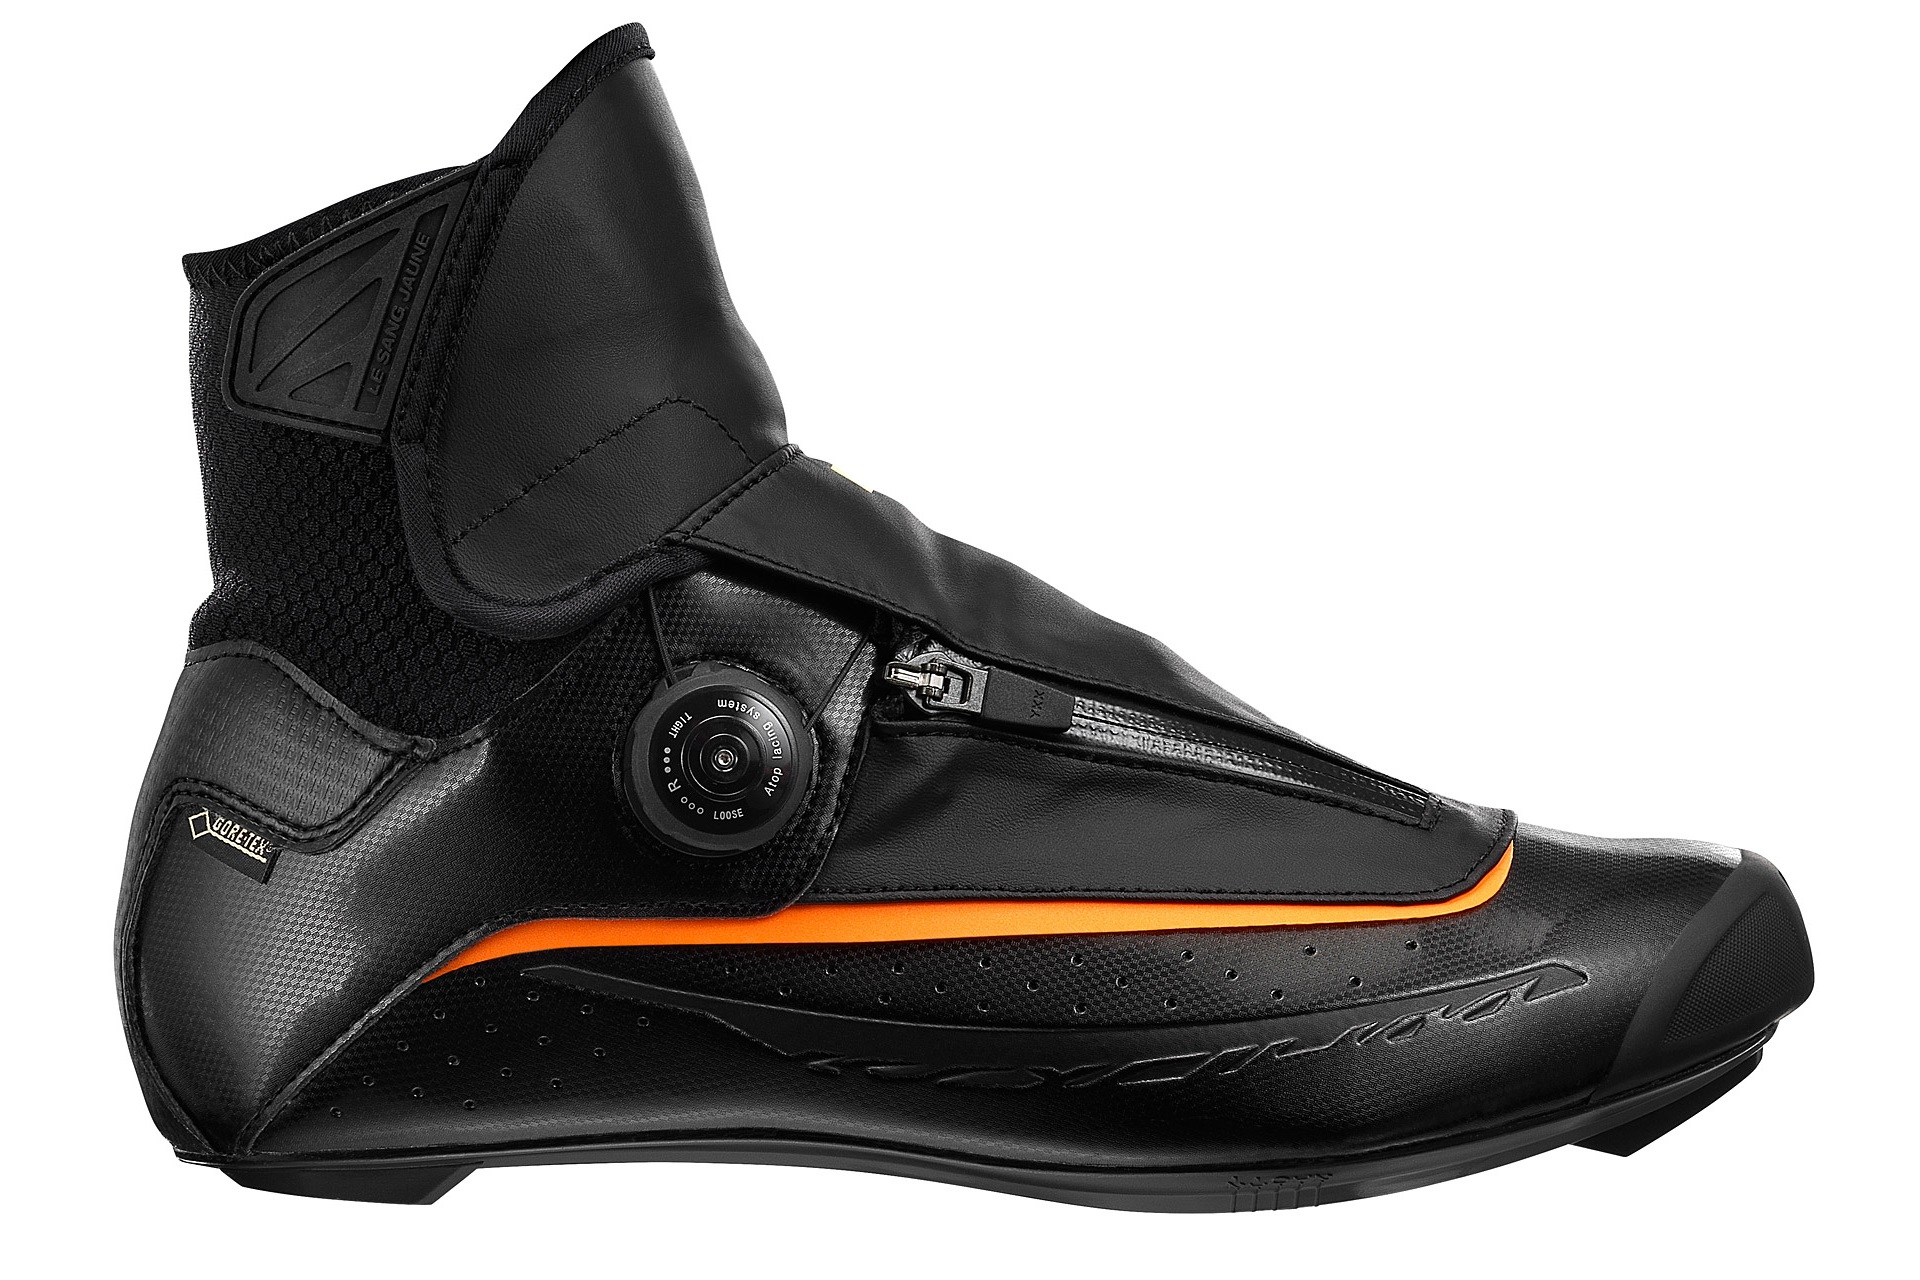 Six of the best winter cycling shoes